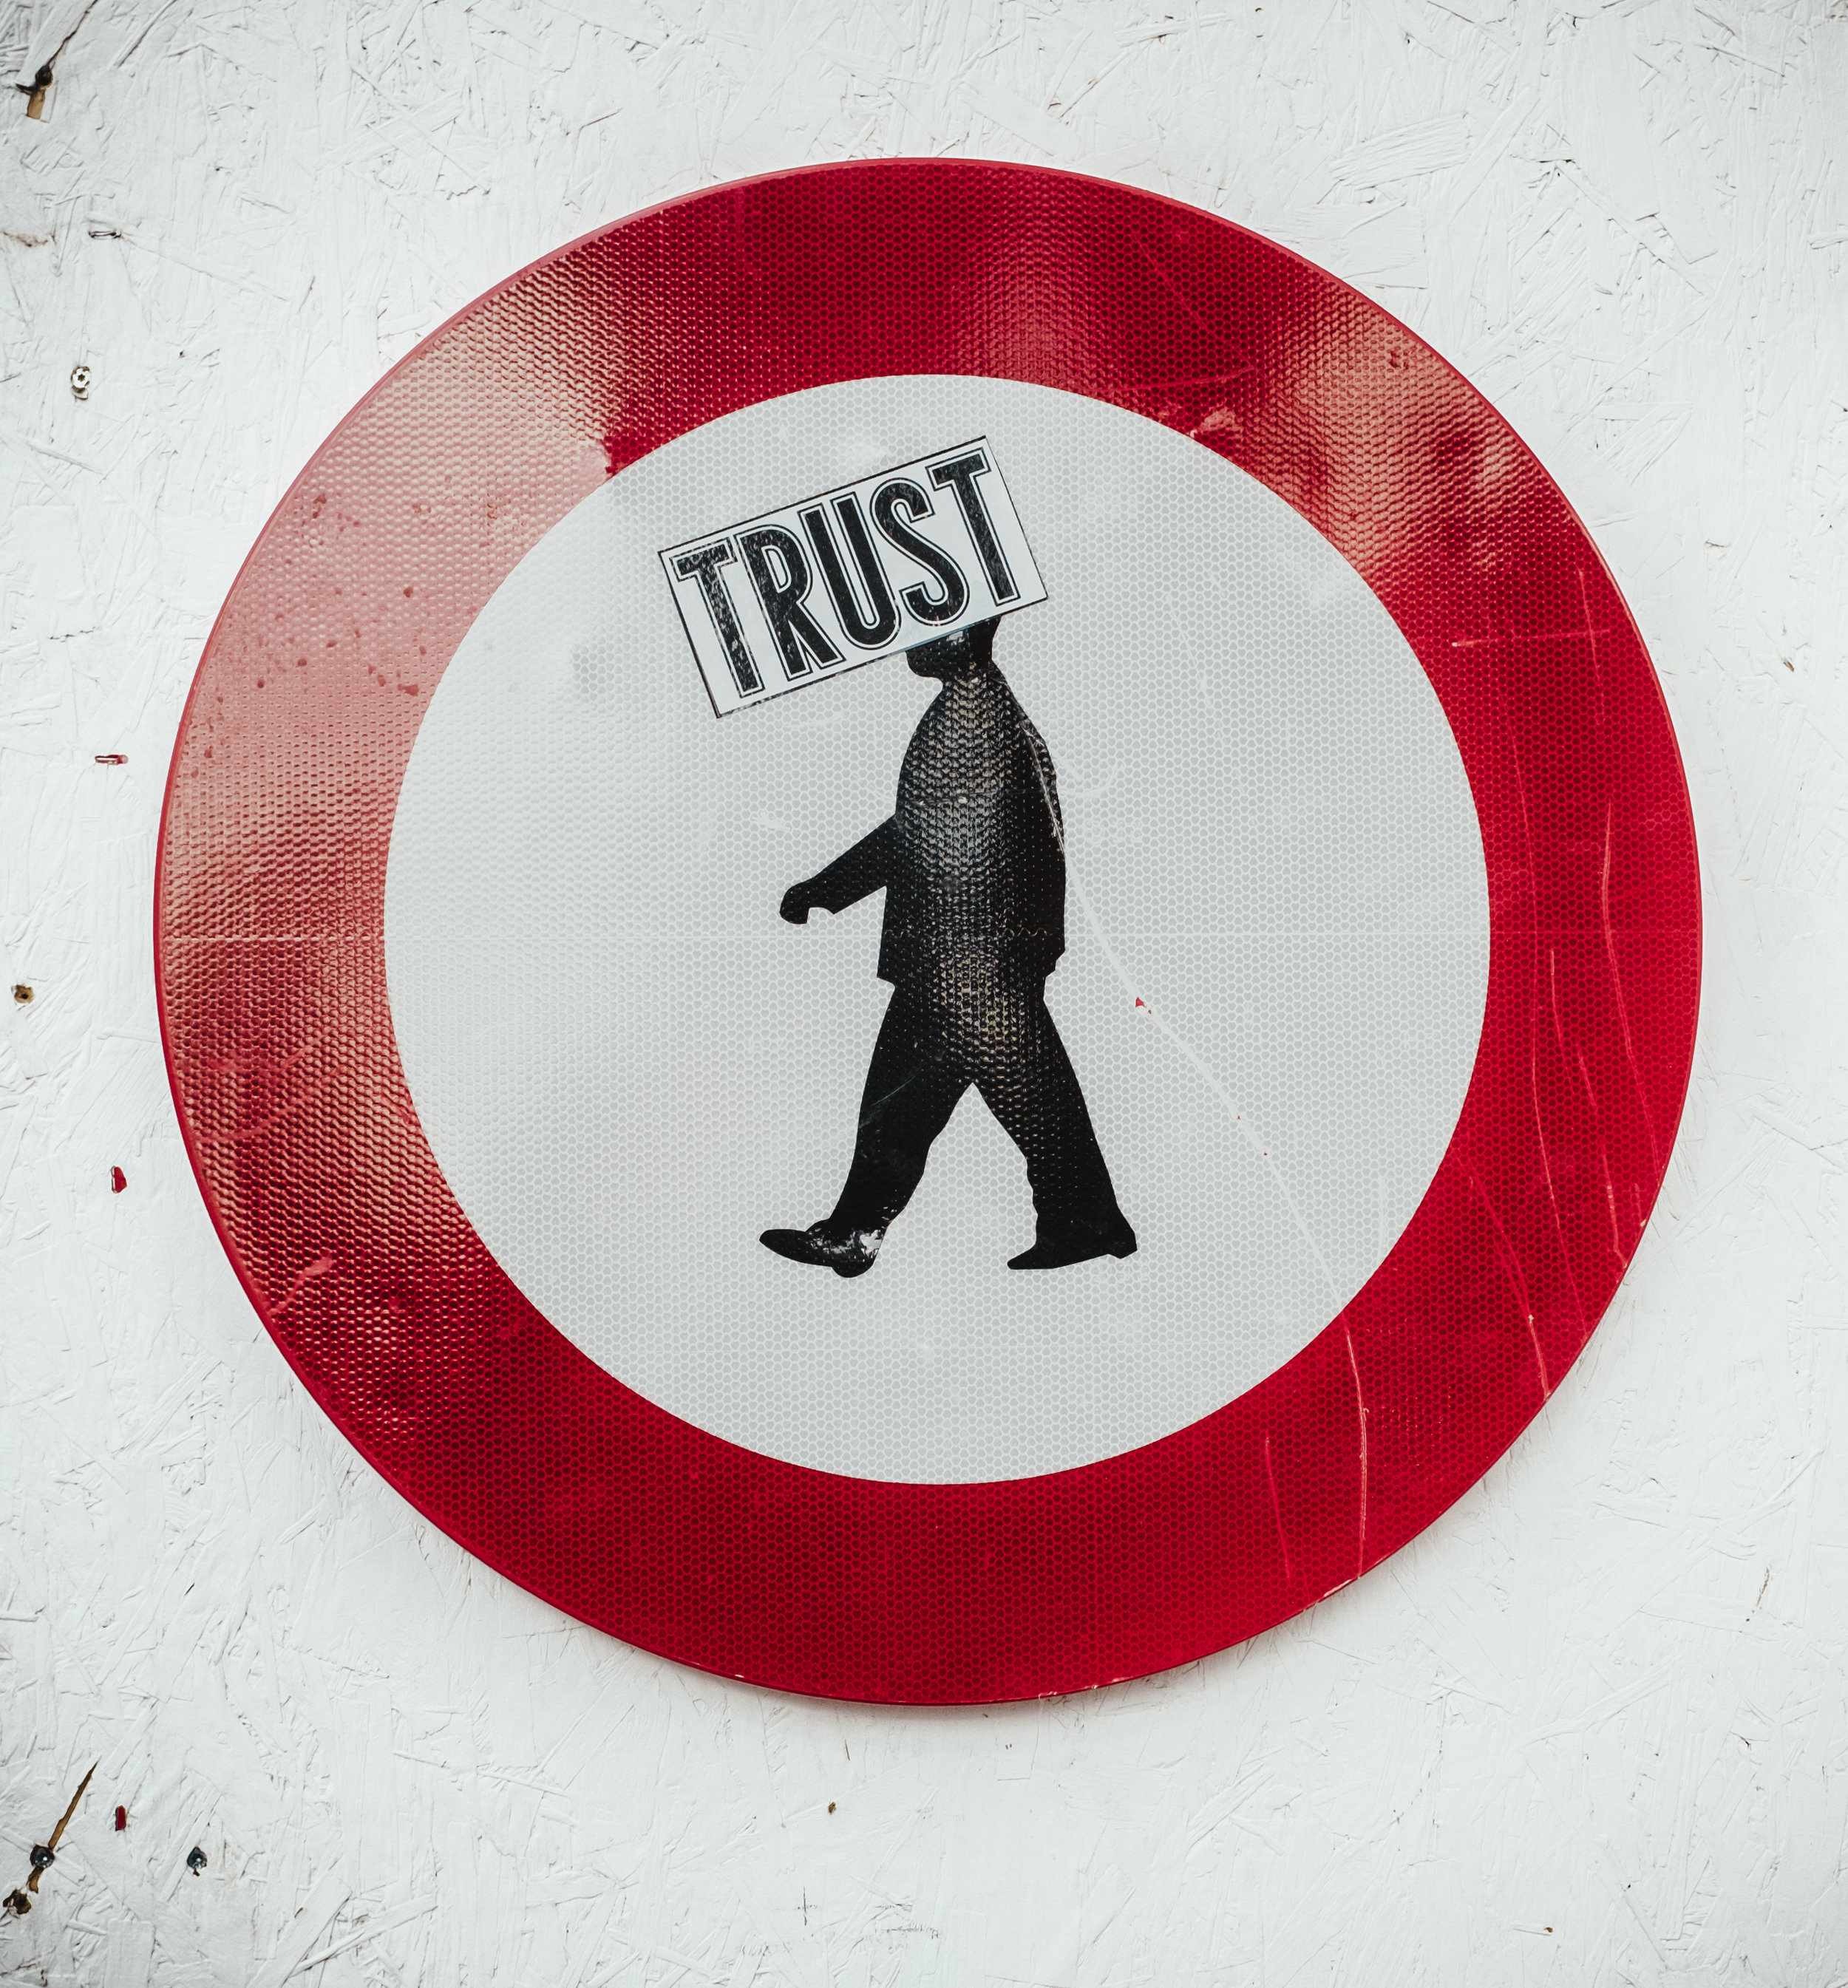 The problem Profila will solve - A lack of trust and inaccurate big data